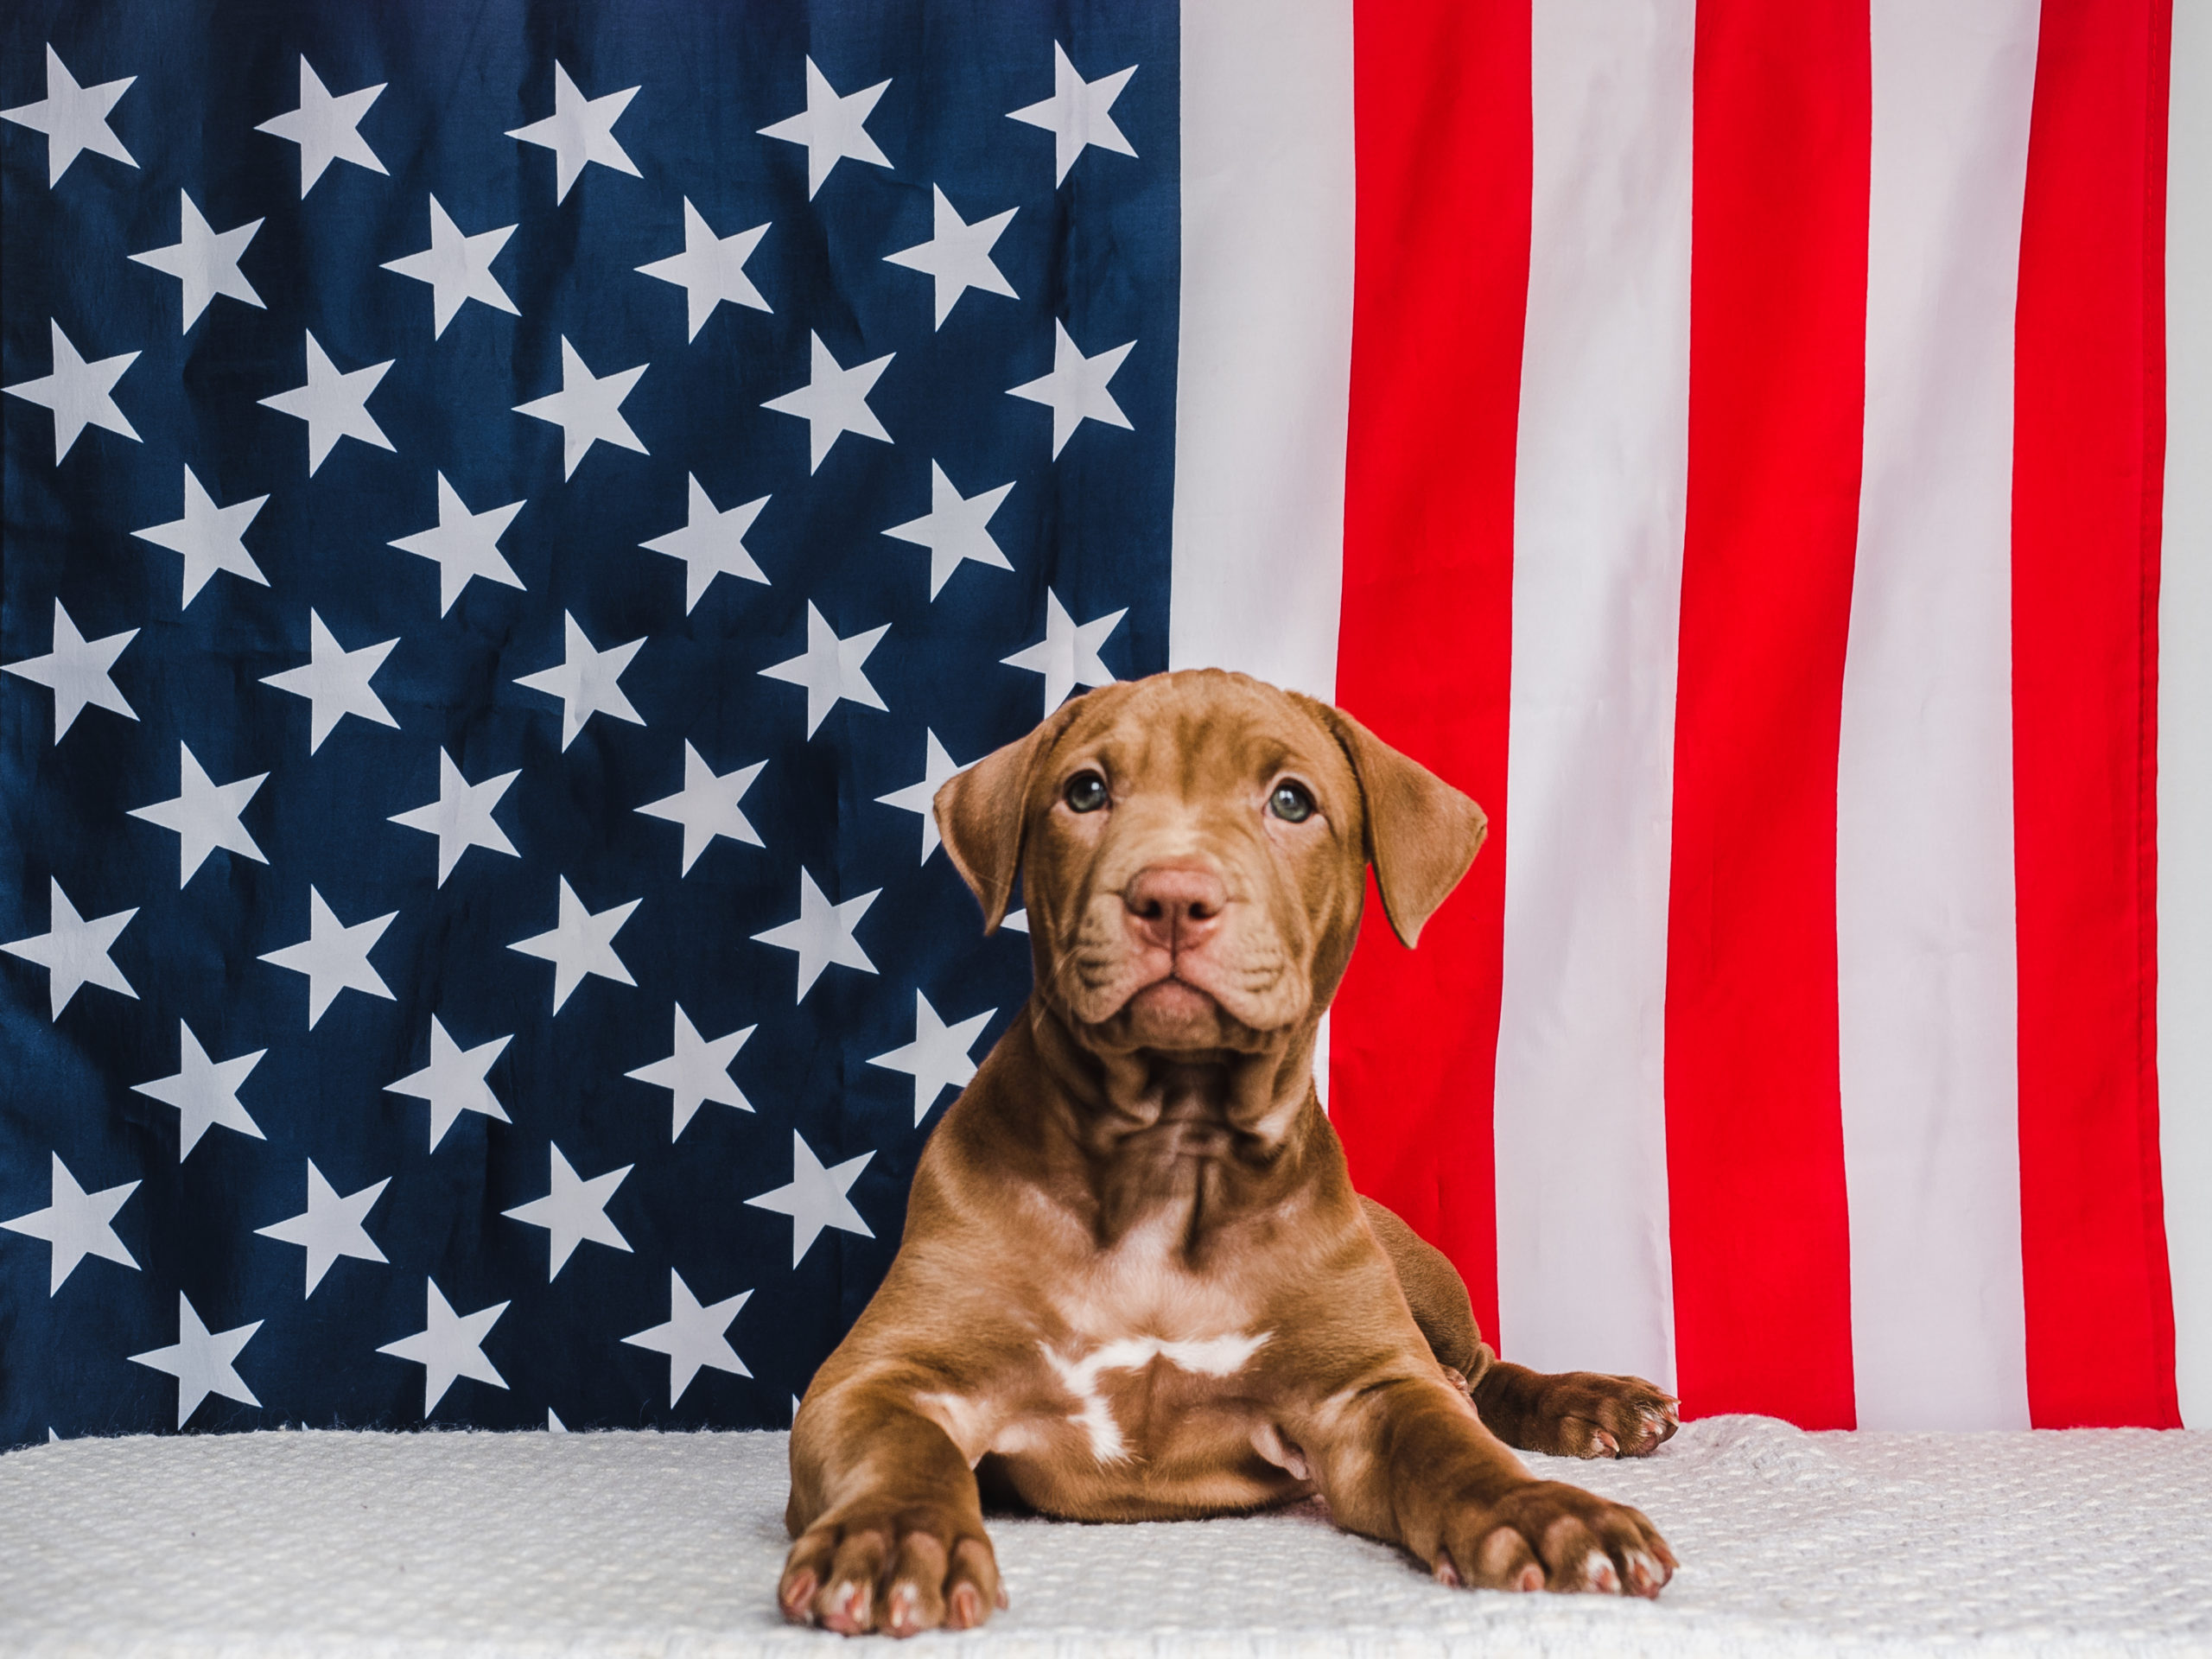 Pup + American Flag